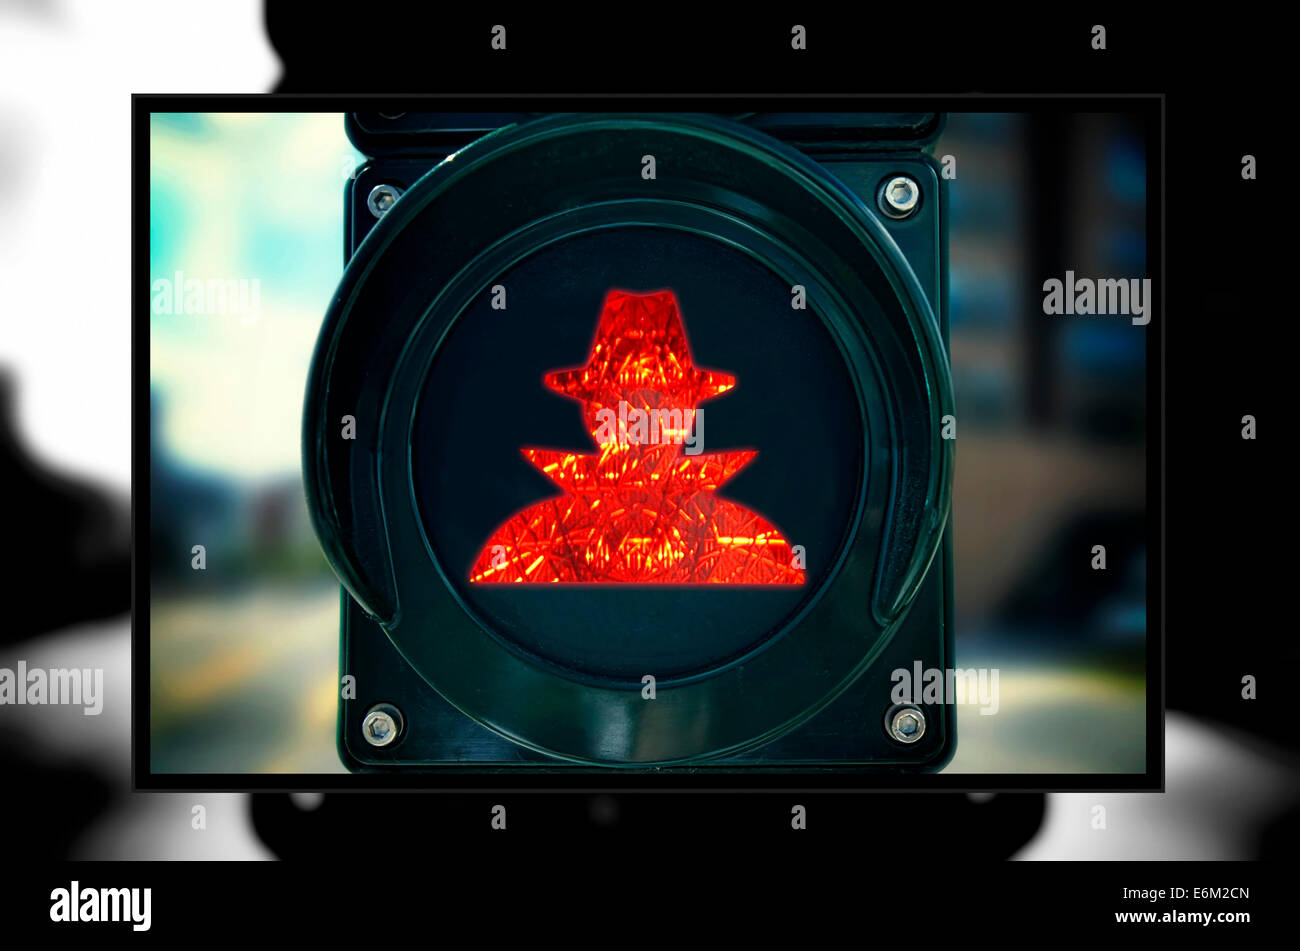 Rote Ampel Stock Photos Rote Ampel Stock Images Alamy